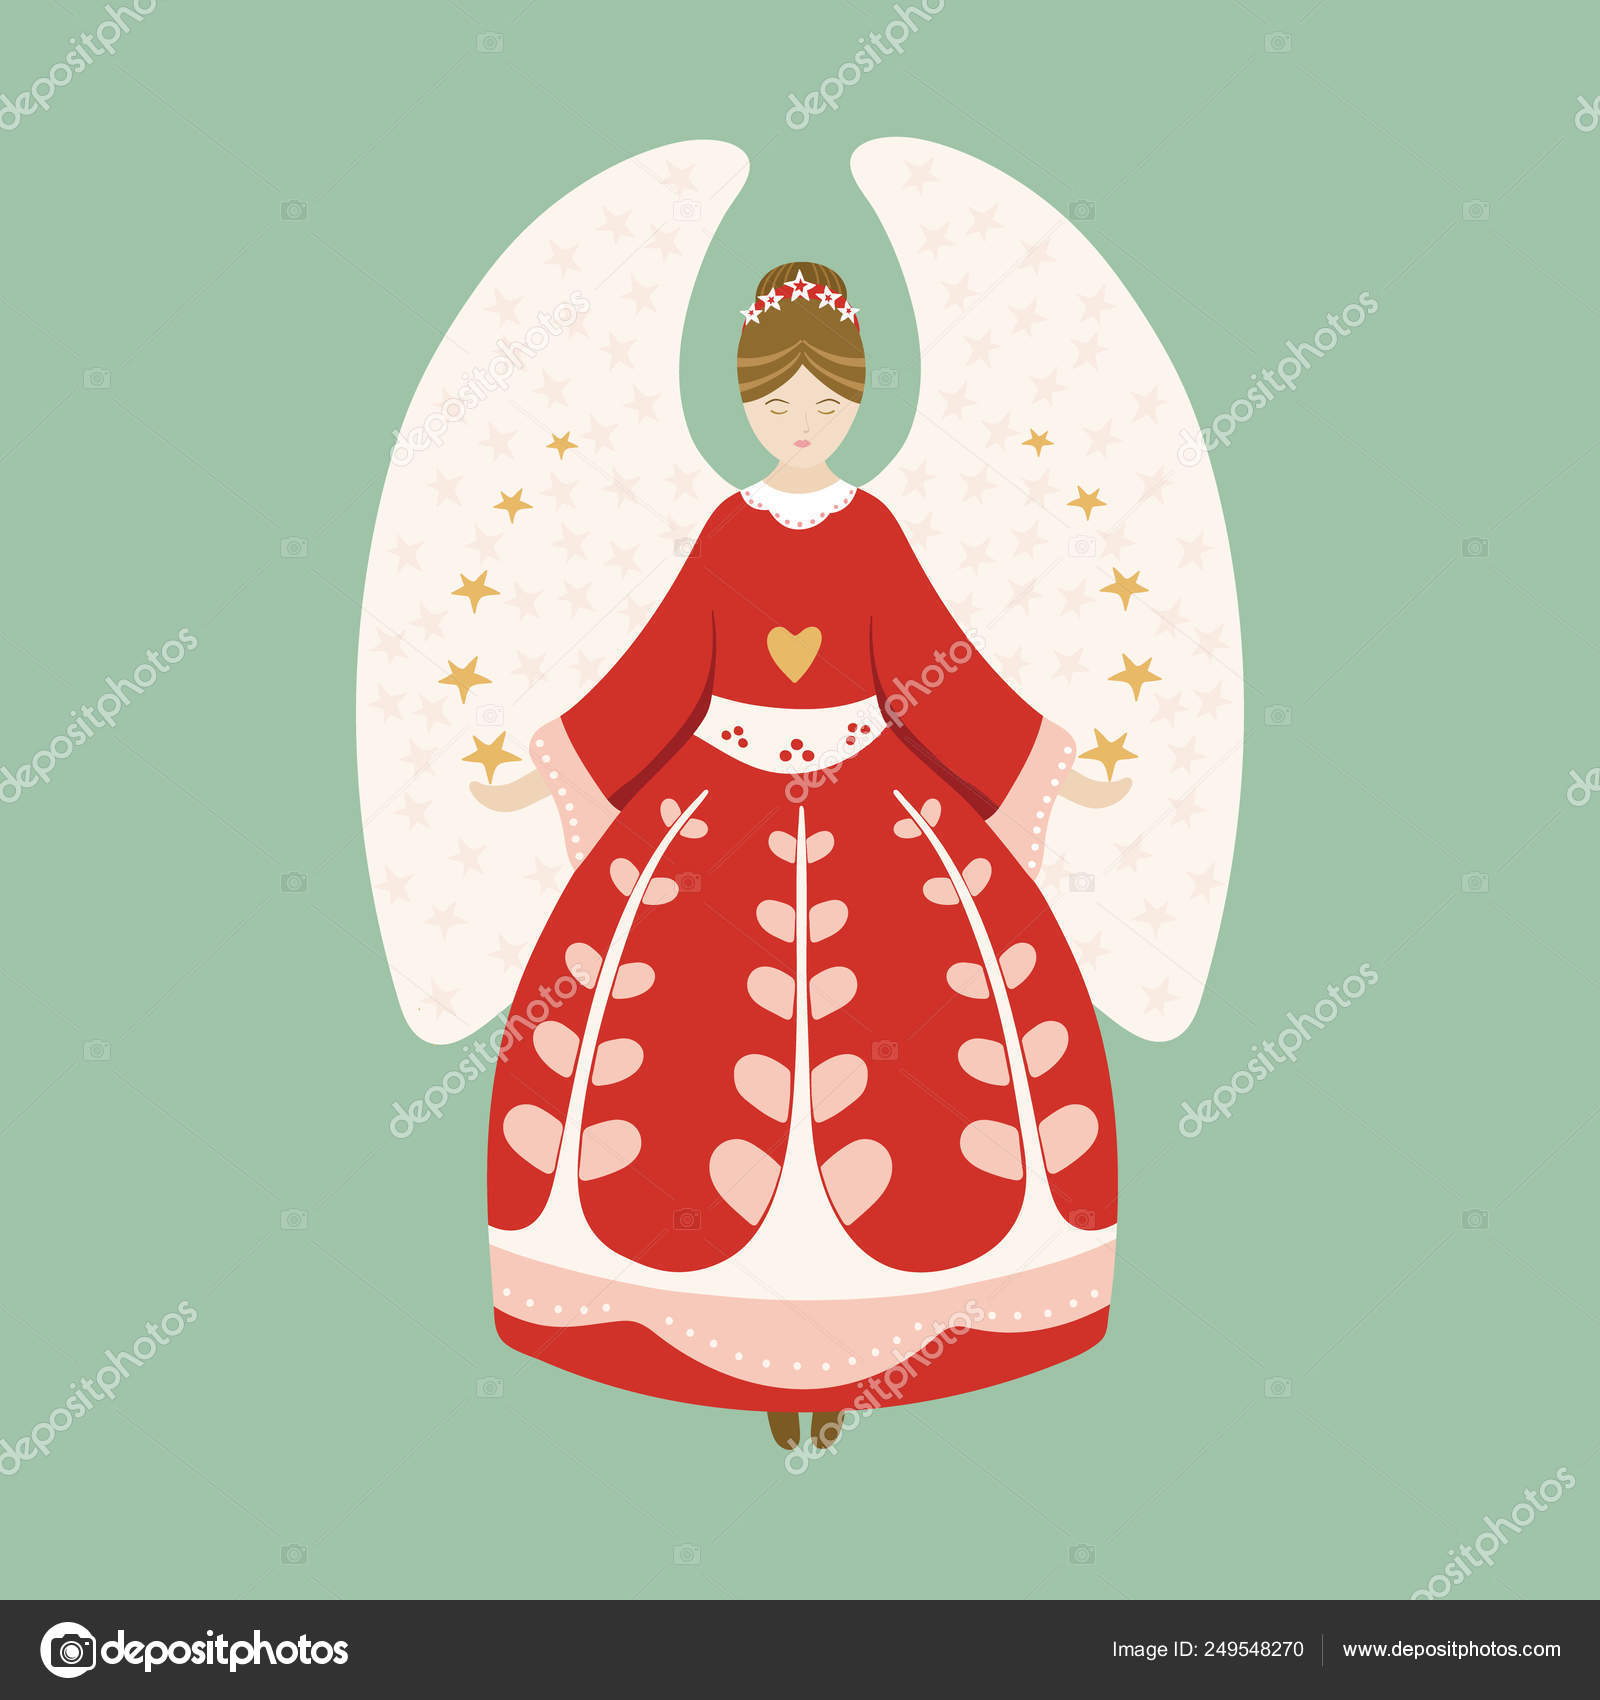 Vector vintage Christmas angel illustration. Pretty illustration perfect for christmas card, decorations and prints